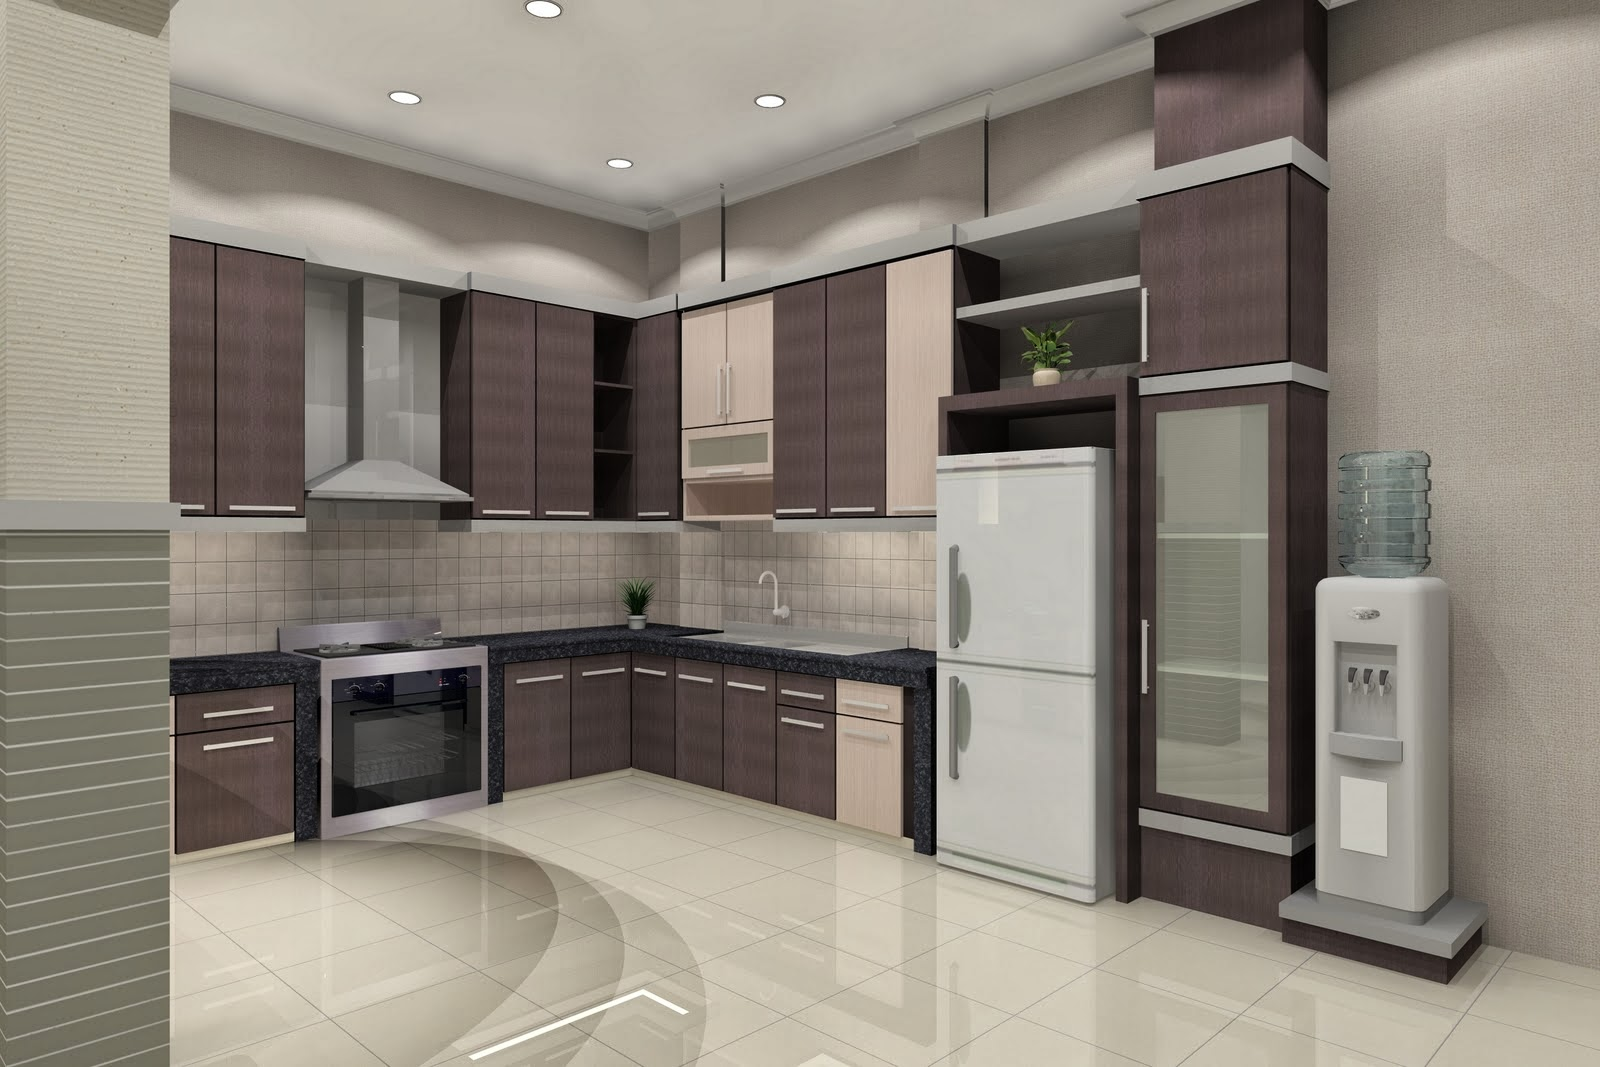 Modern Kitchen Design for Minimalist House 2014, Modern Kitchen Design for  Minimalist House 2014 Remodel